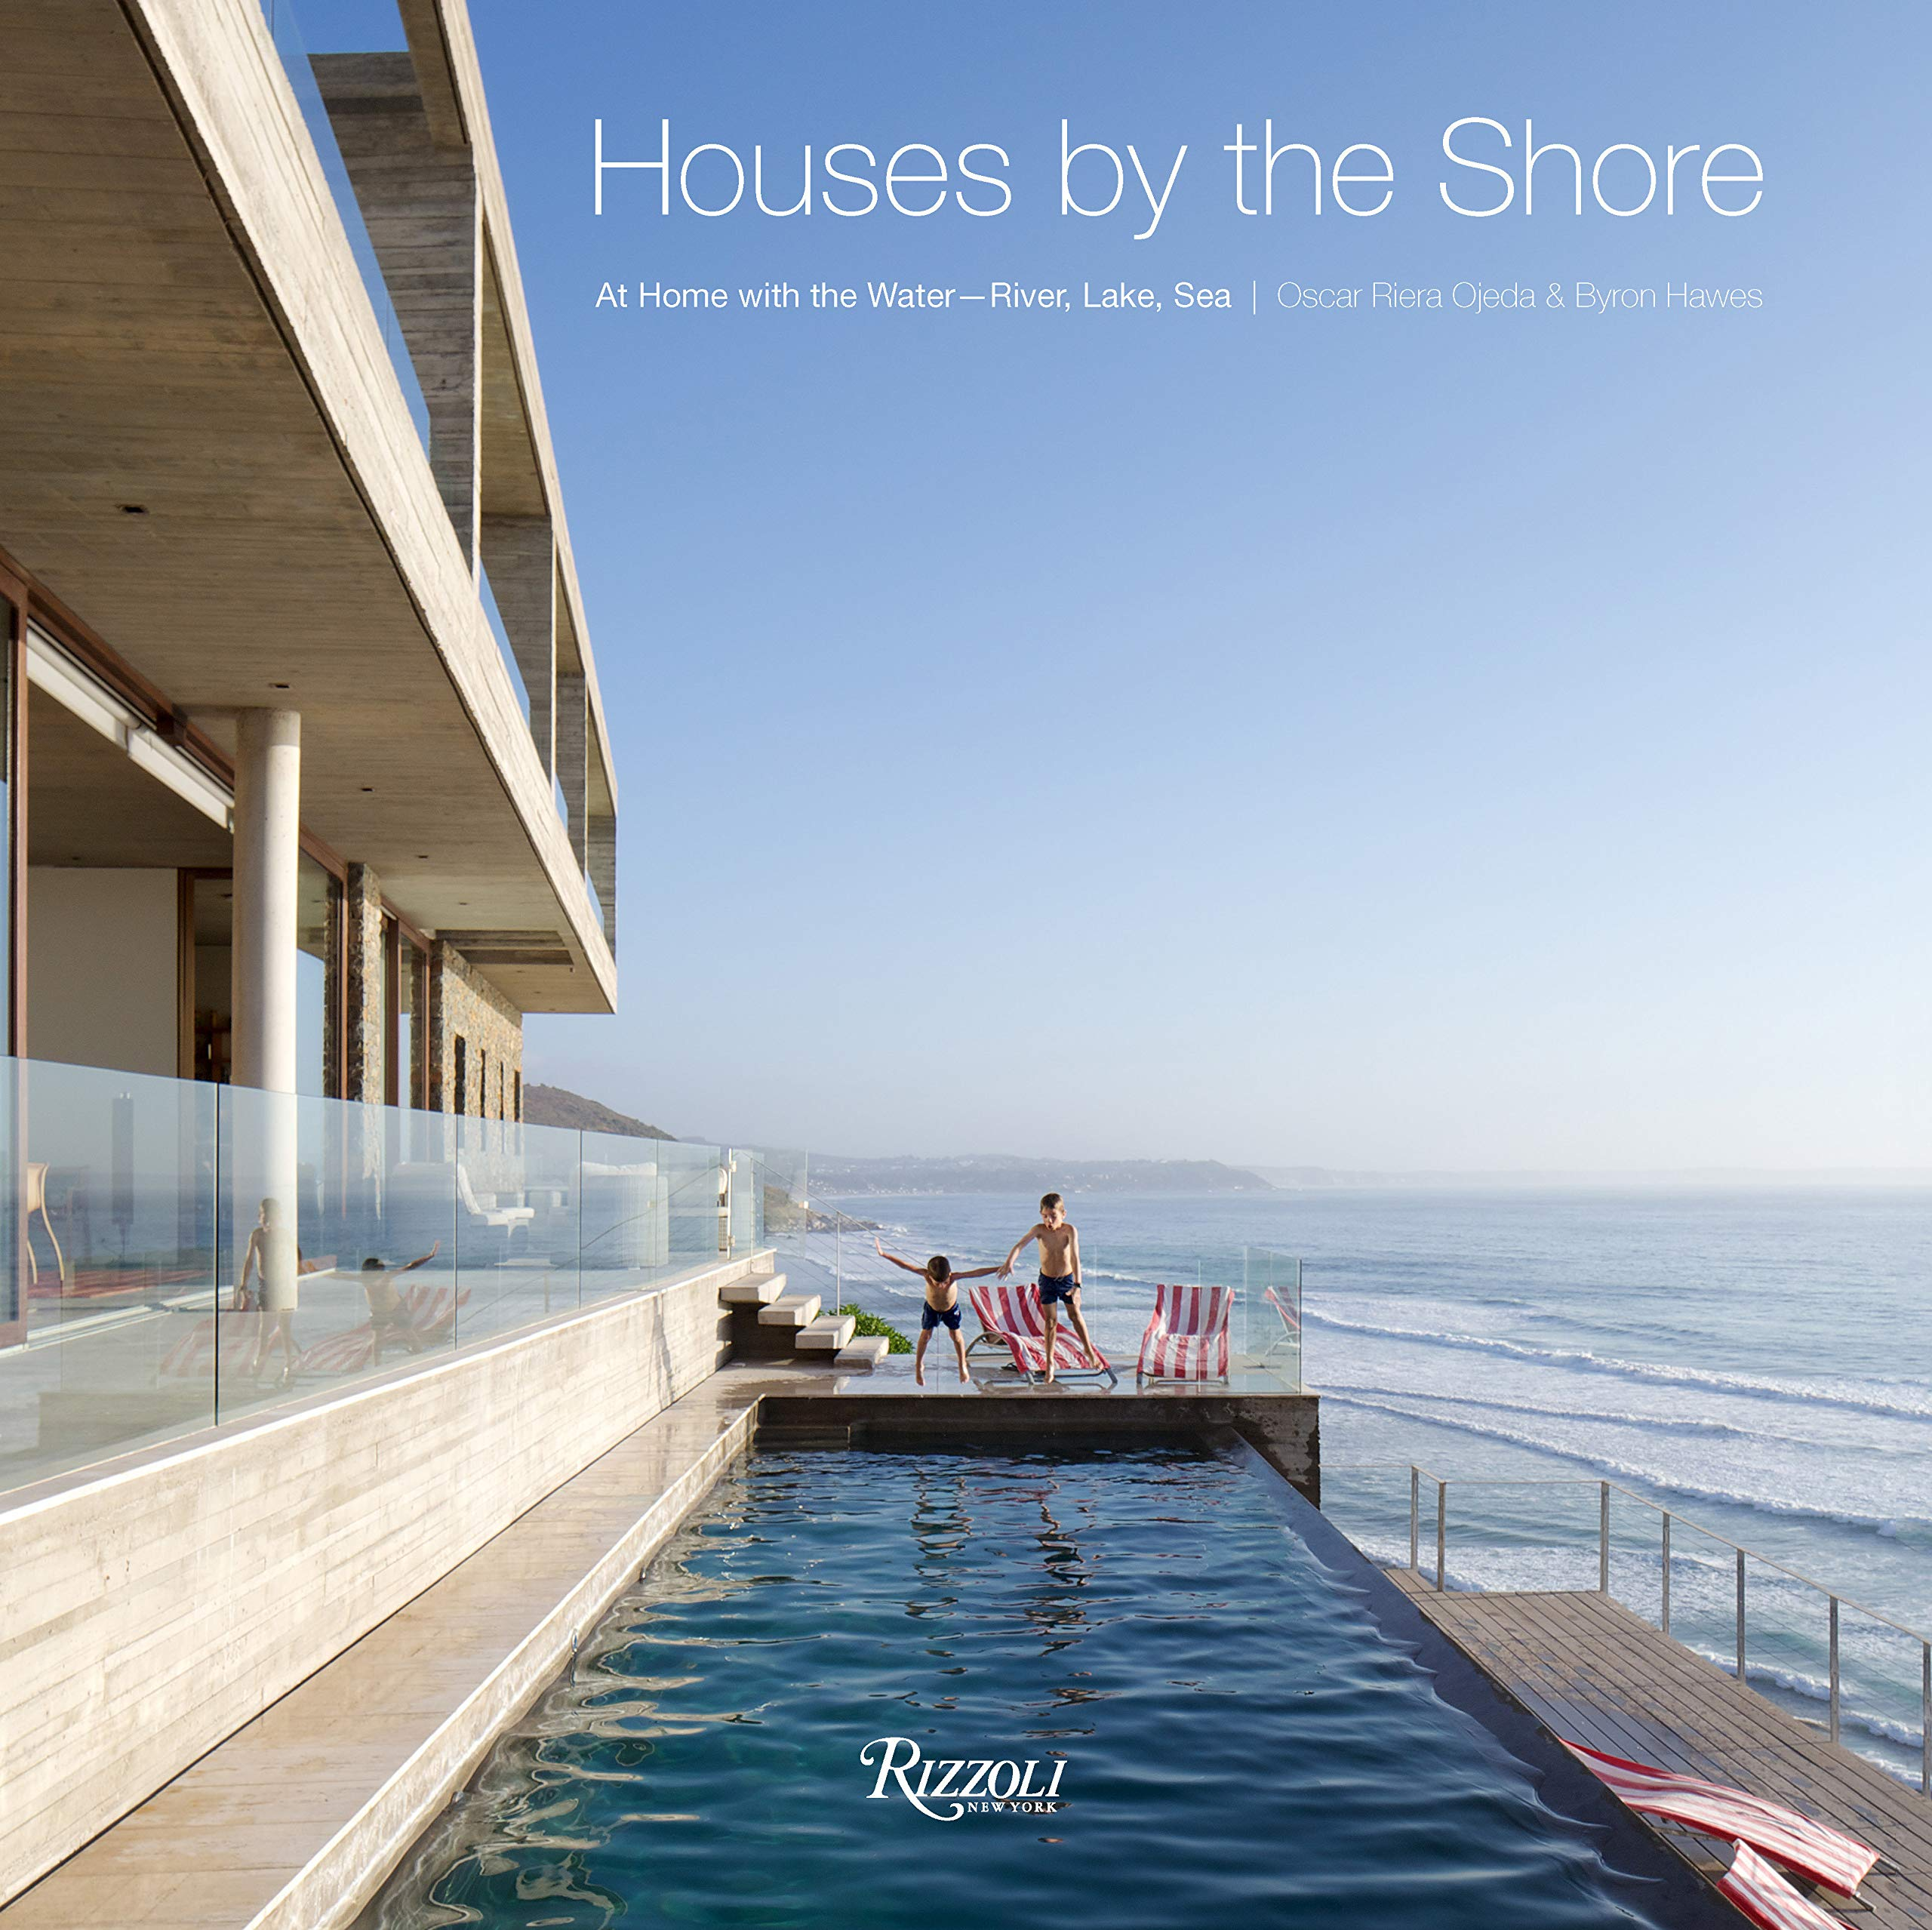 Houses by the Shore: At Home With The Water: River, Lake, Sea by Rizzoli